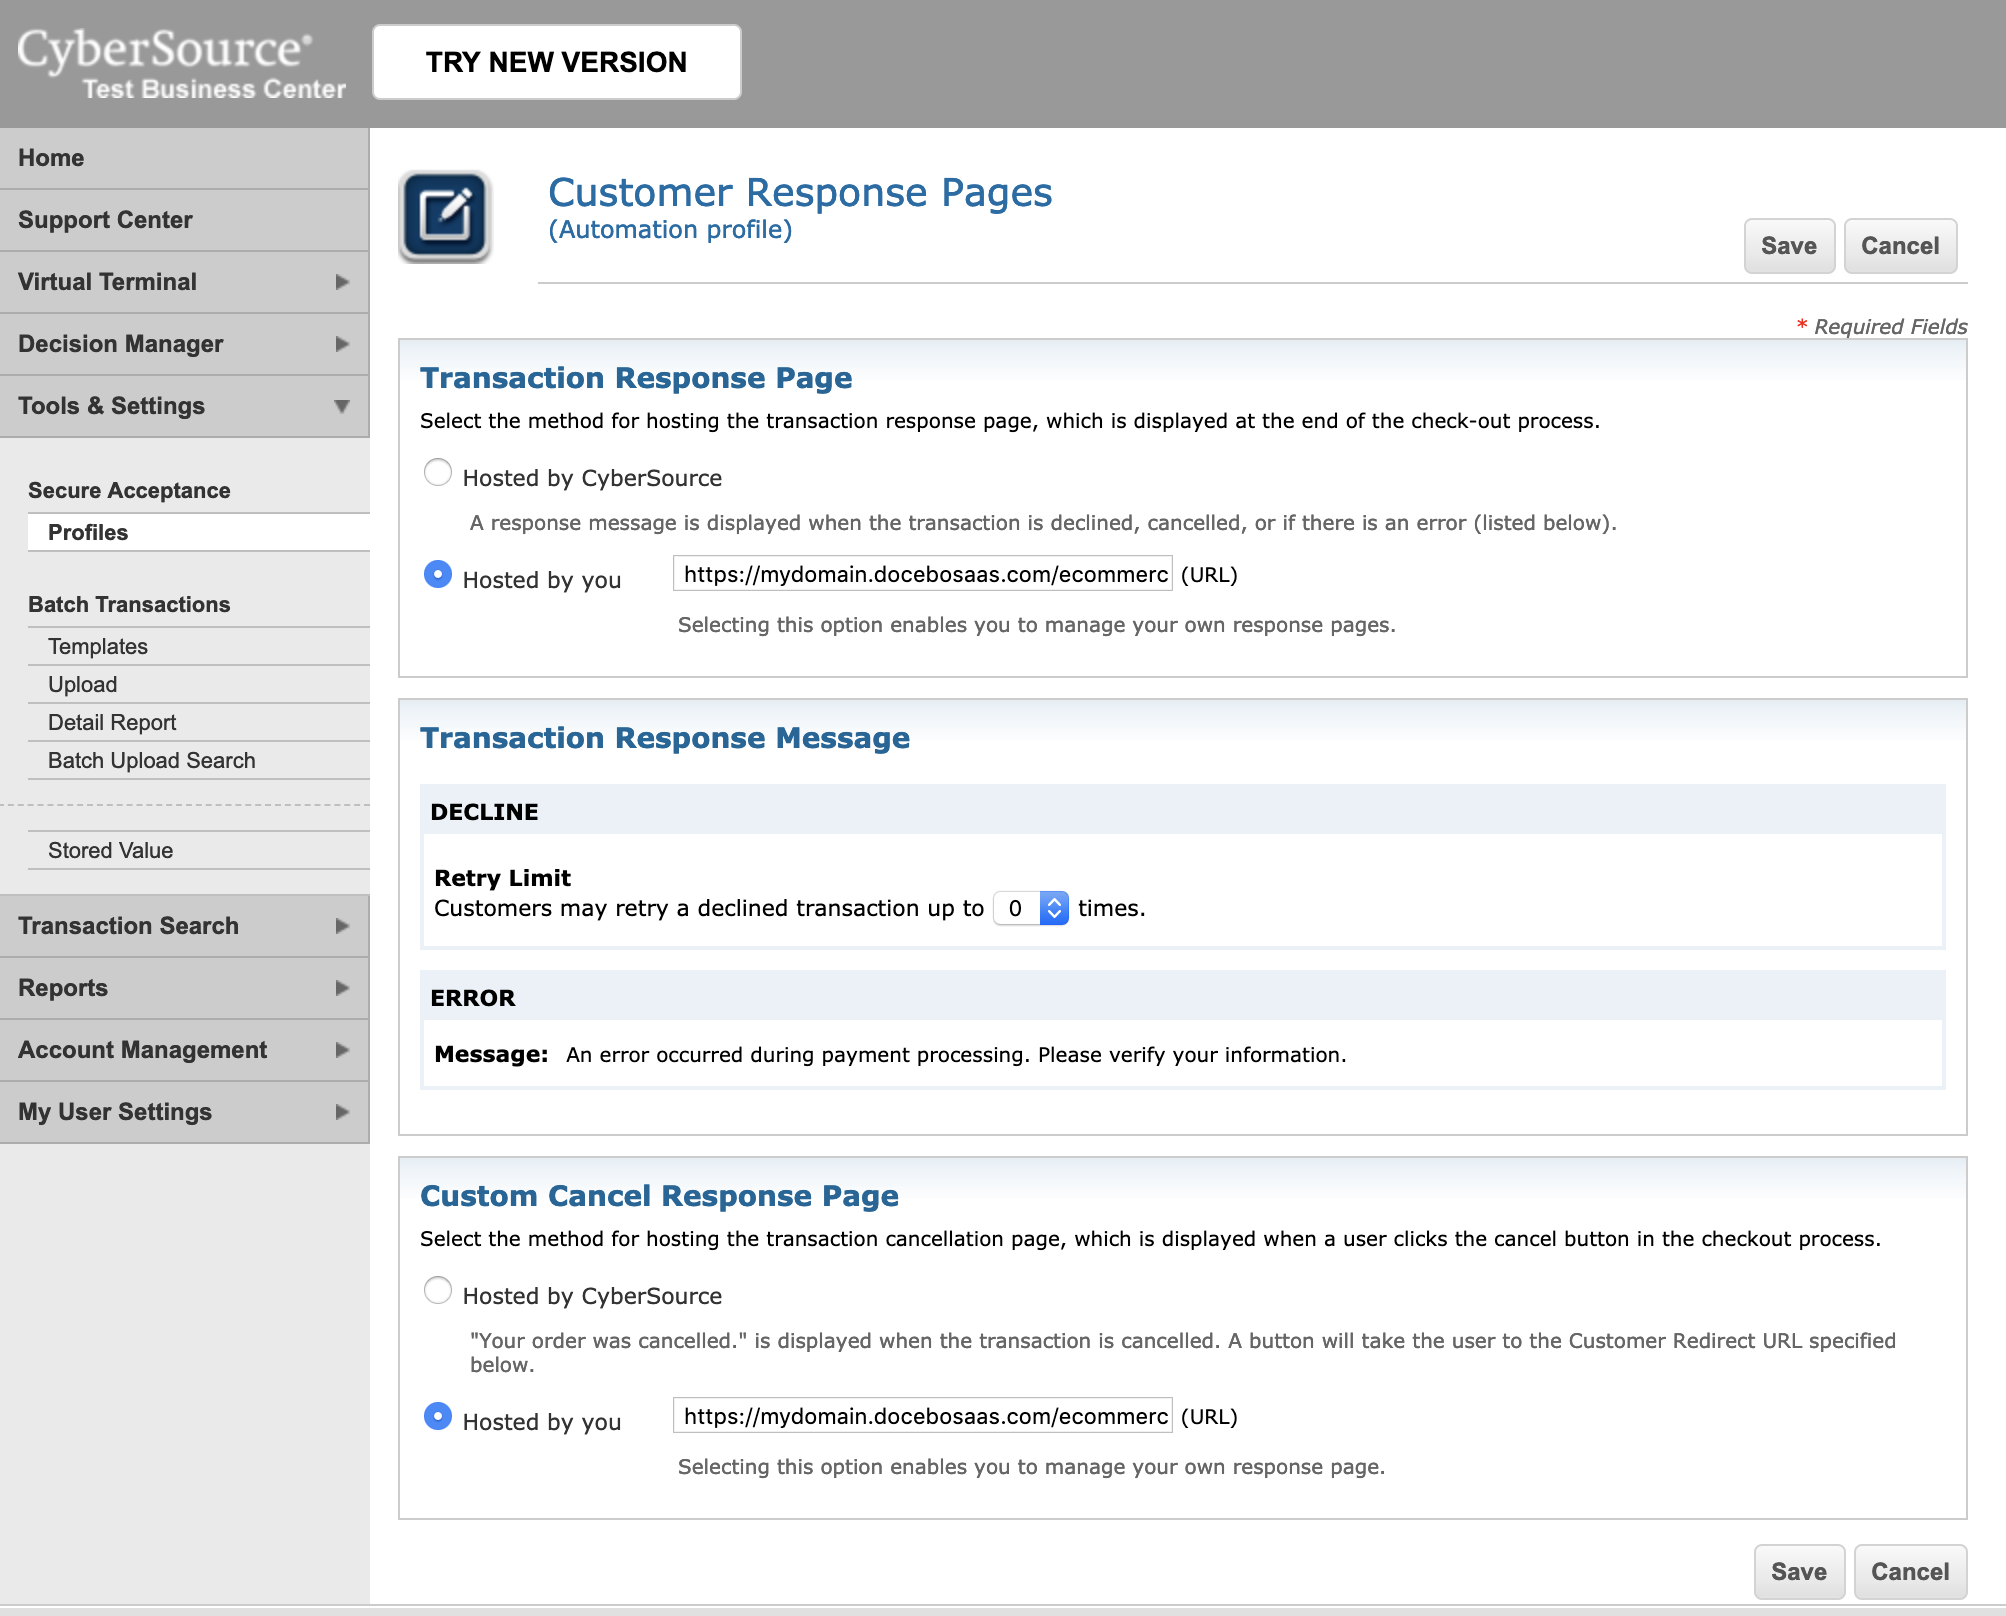 cybersource customer response pages